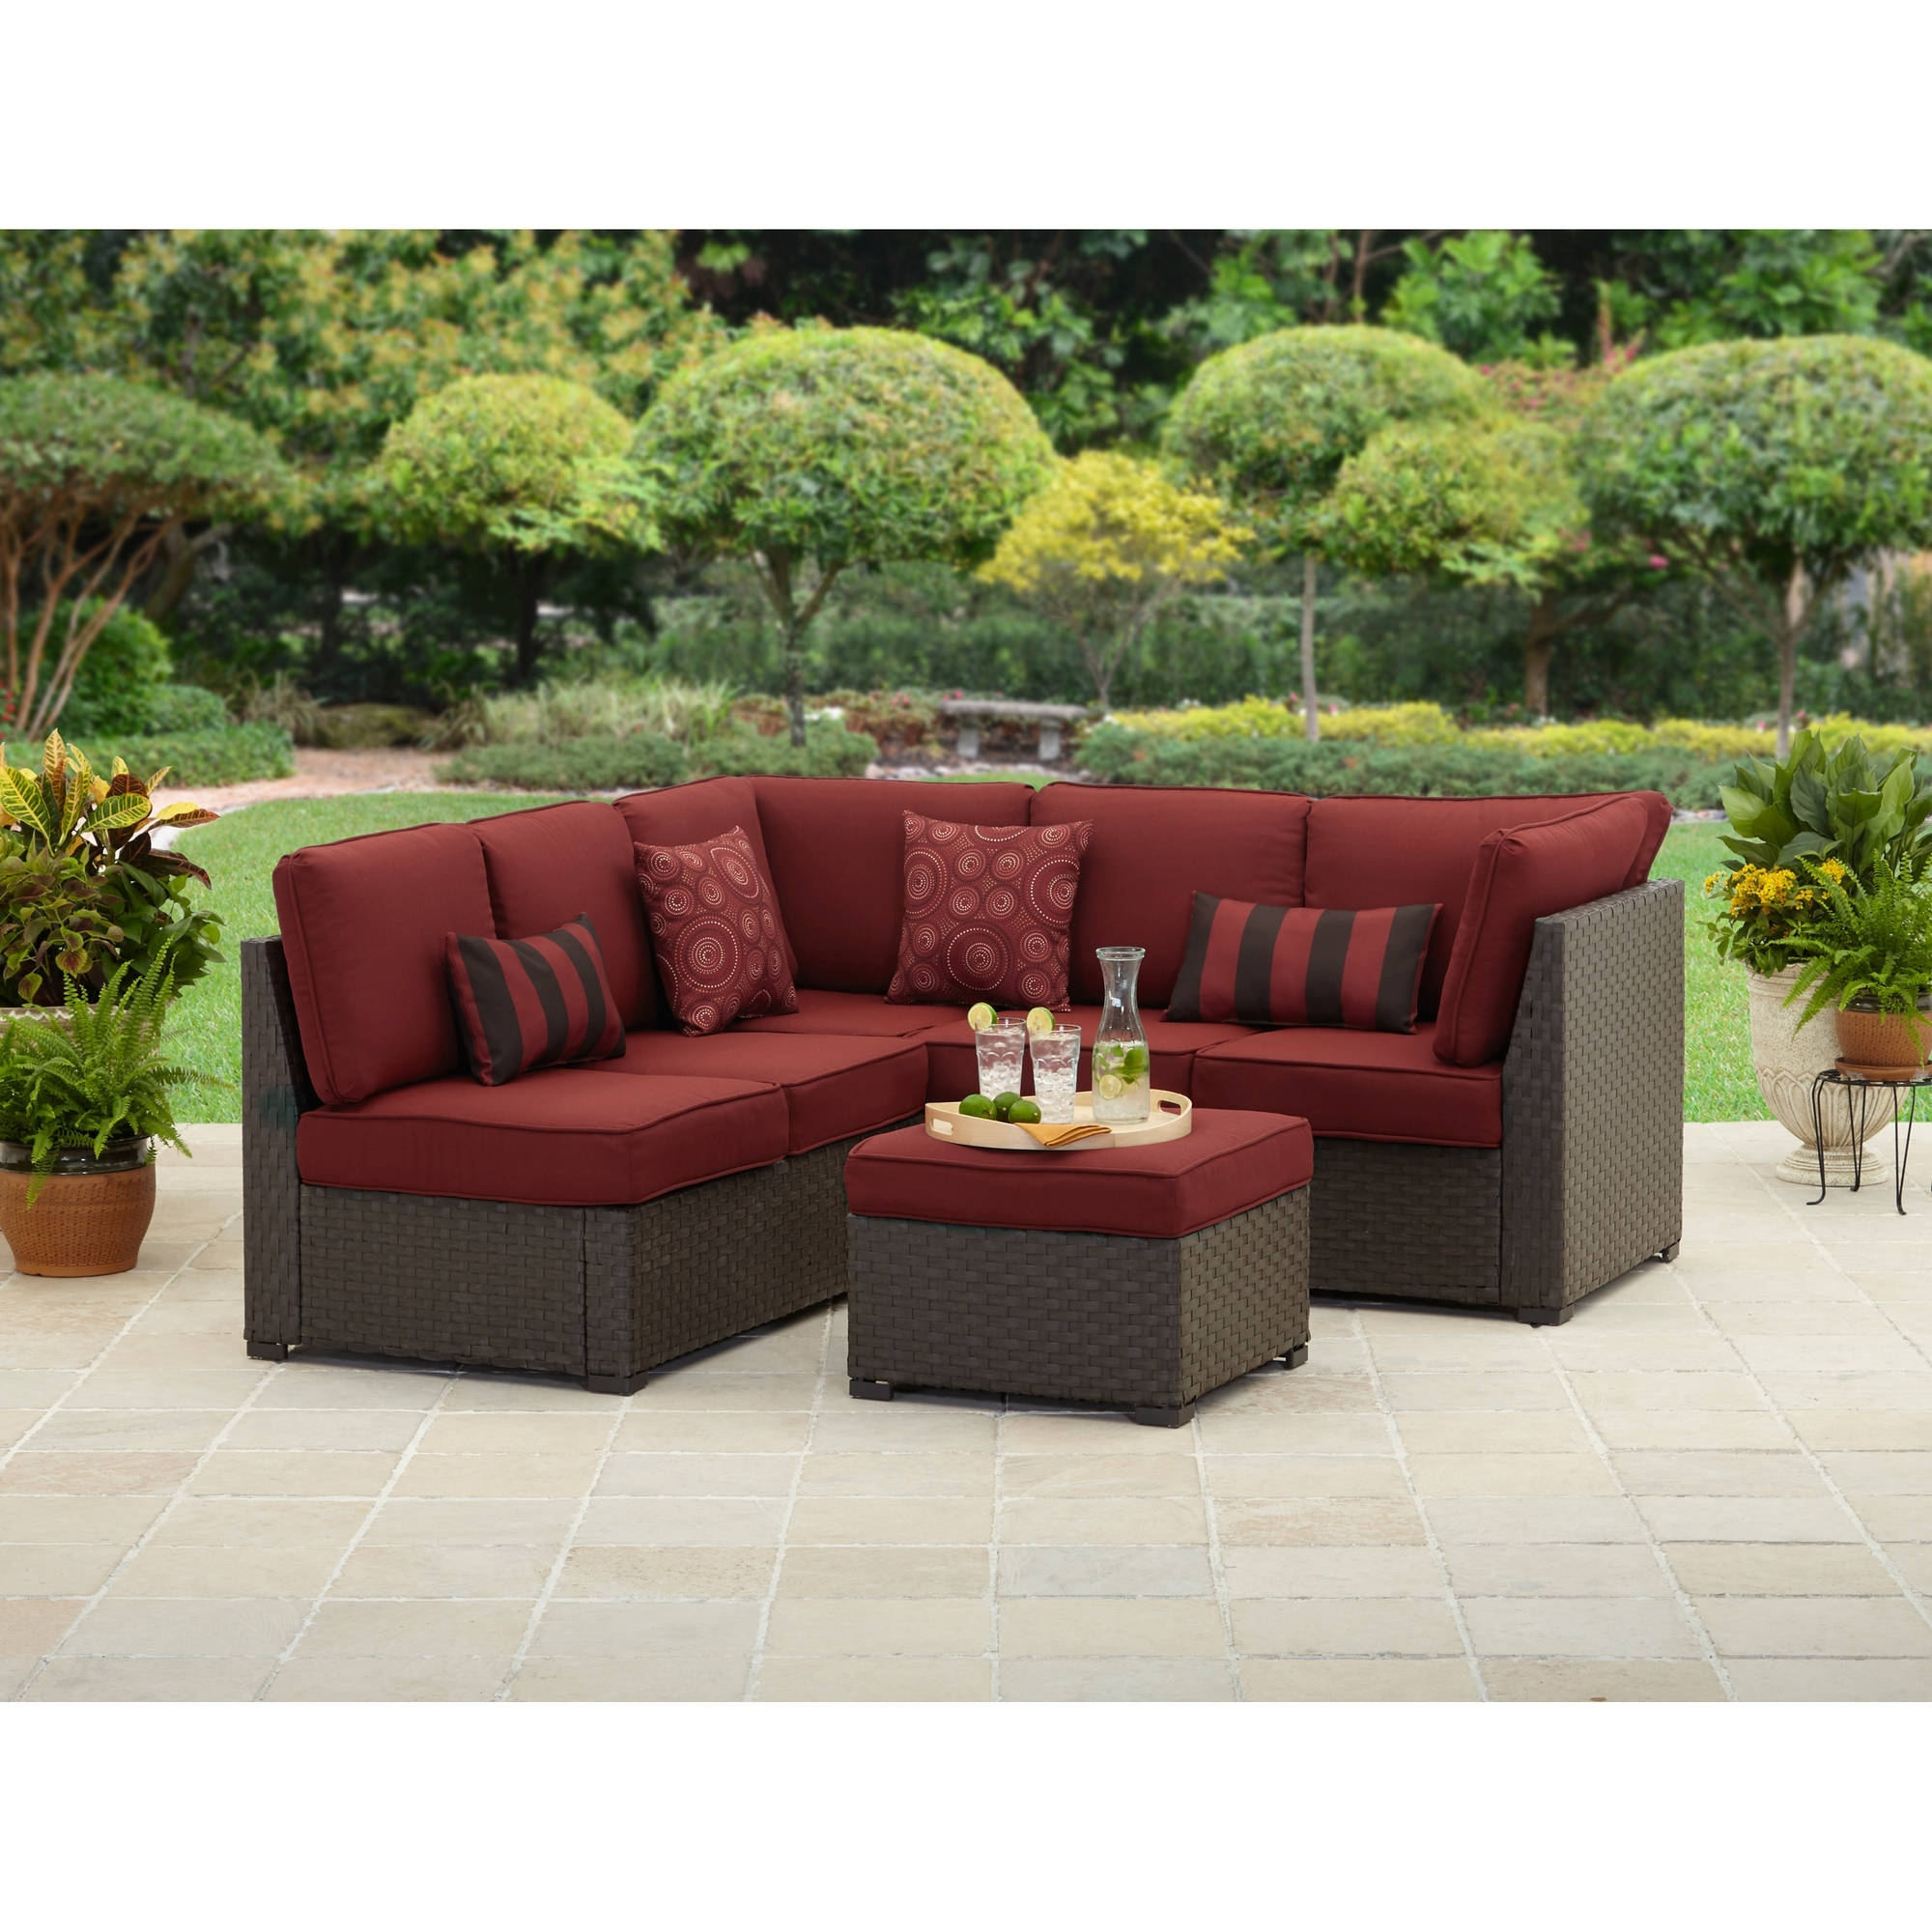 2019 Patio Conversation Sets Clearance Patio Conversation Sets Under 300 In Target Patio Furniture Conversation Sets (View 6 of 20)